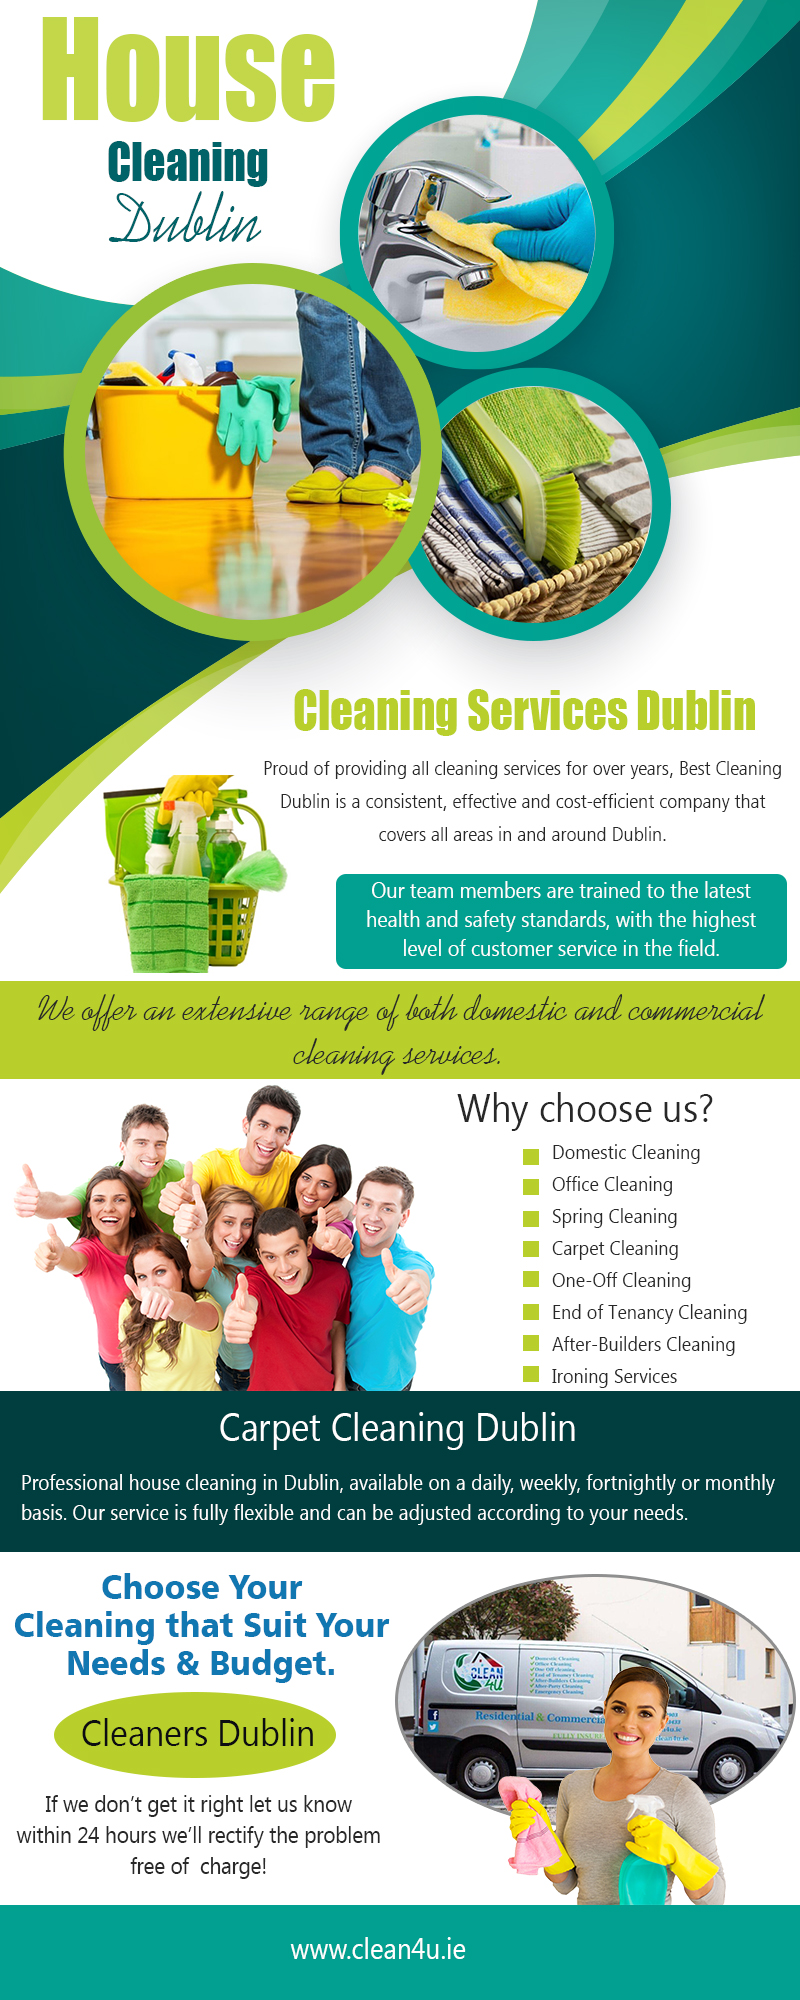 House Cleaning Dublin